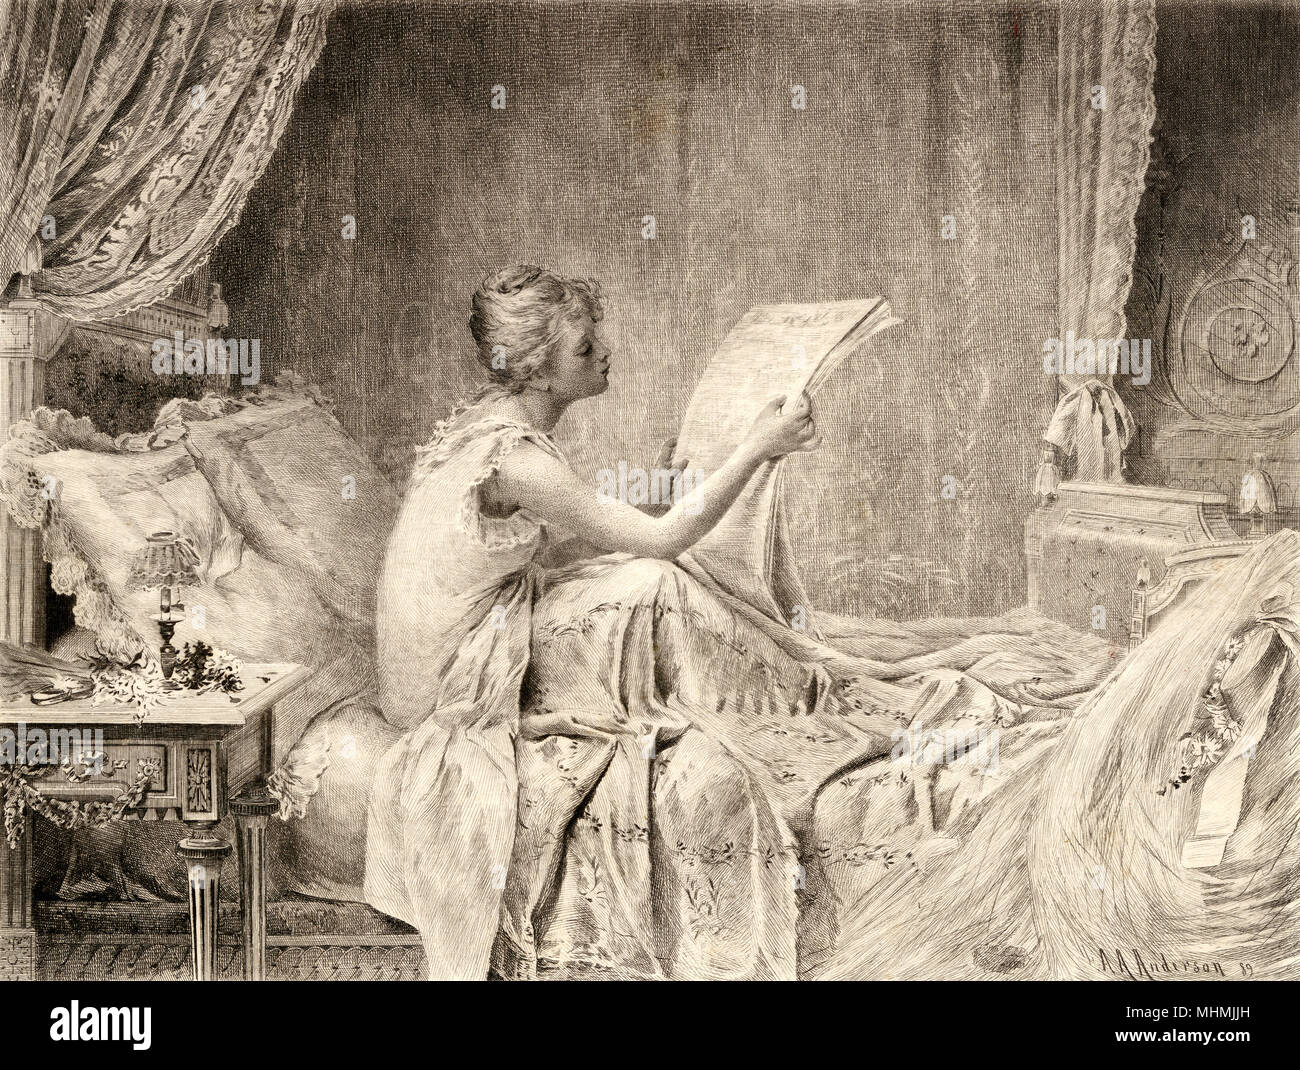 THE MORNING AFTER THE BALL A pretty girl sits up in bed to read the morning newspaper's review about the ball she attended.     Date: 1889 - Stock Image